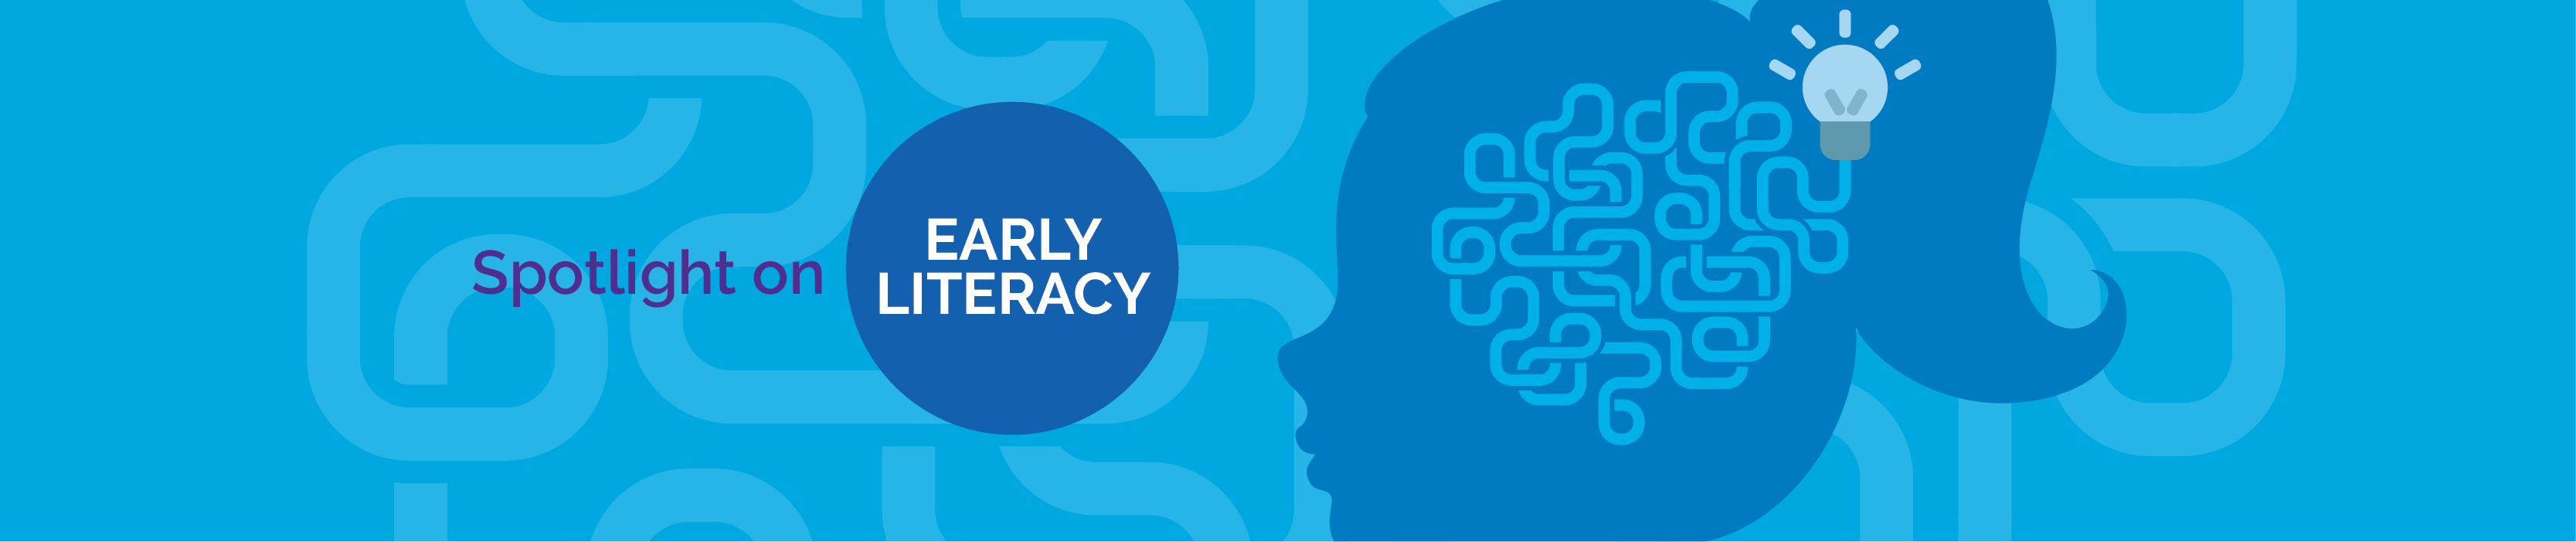 Spotlight on Early Literacy Virtual Conference